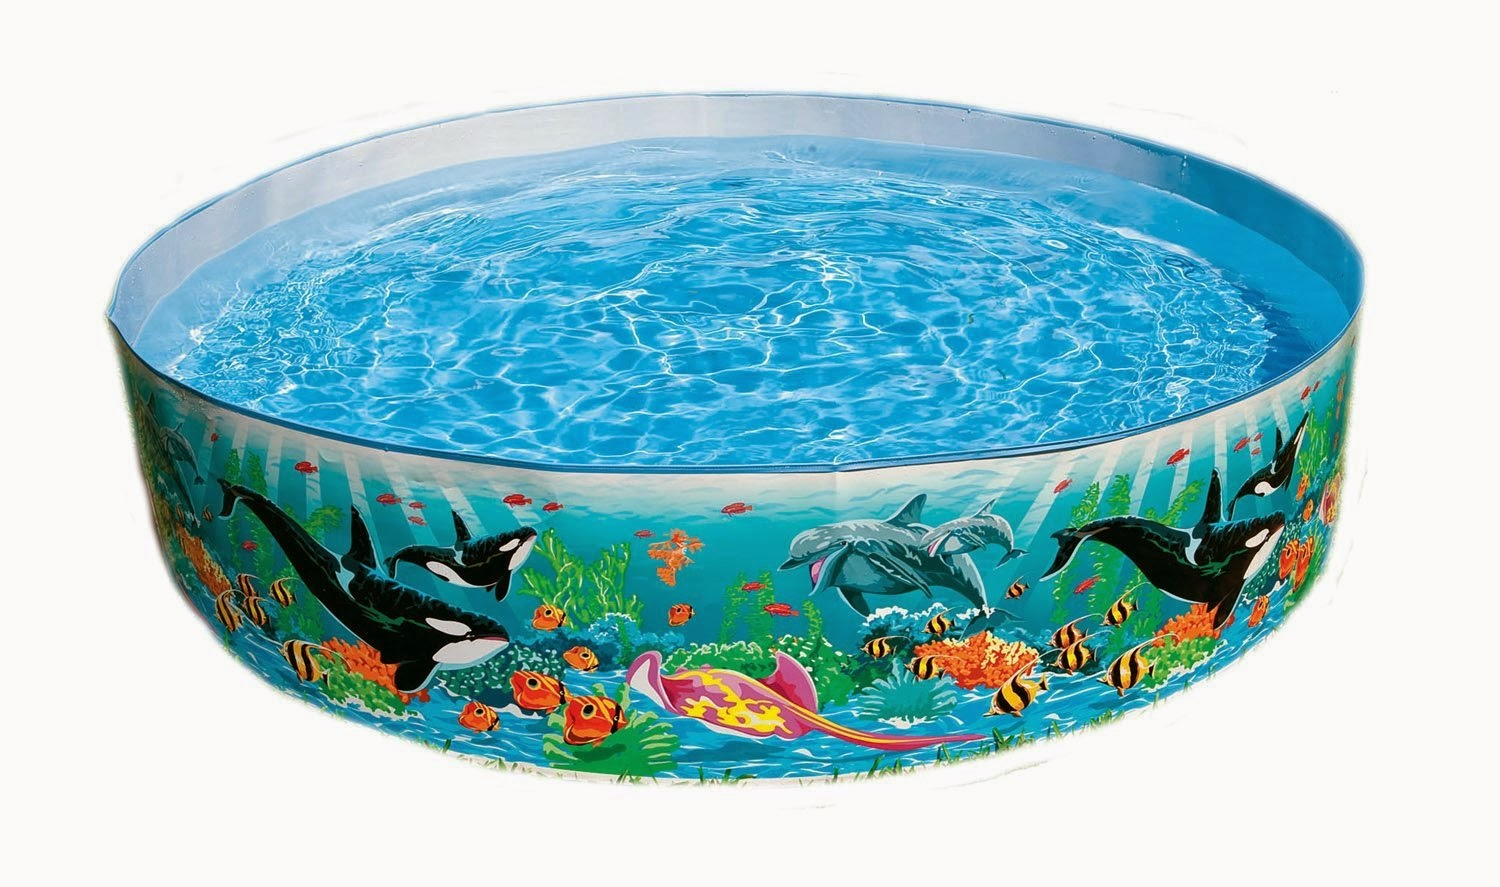 kids pools hard plastic pools for kids. Black Bedroom Furniture Sets. Home Design Ideas